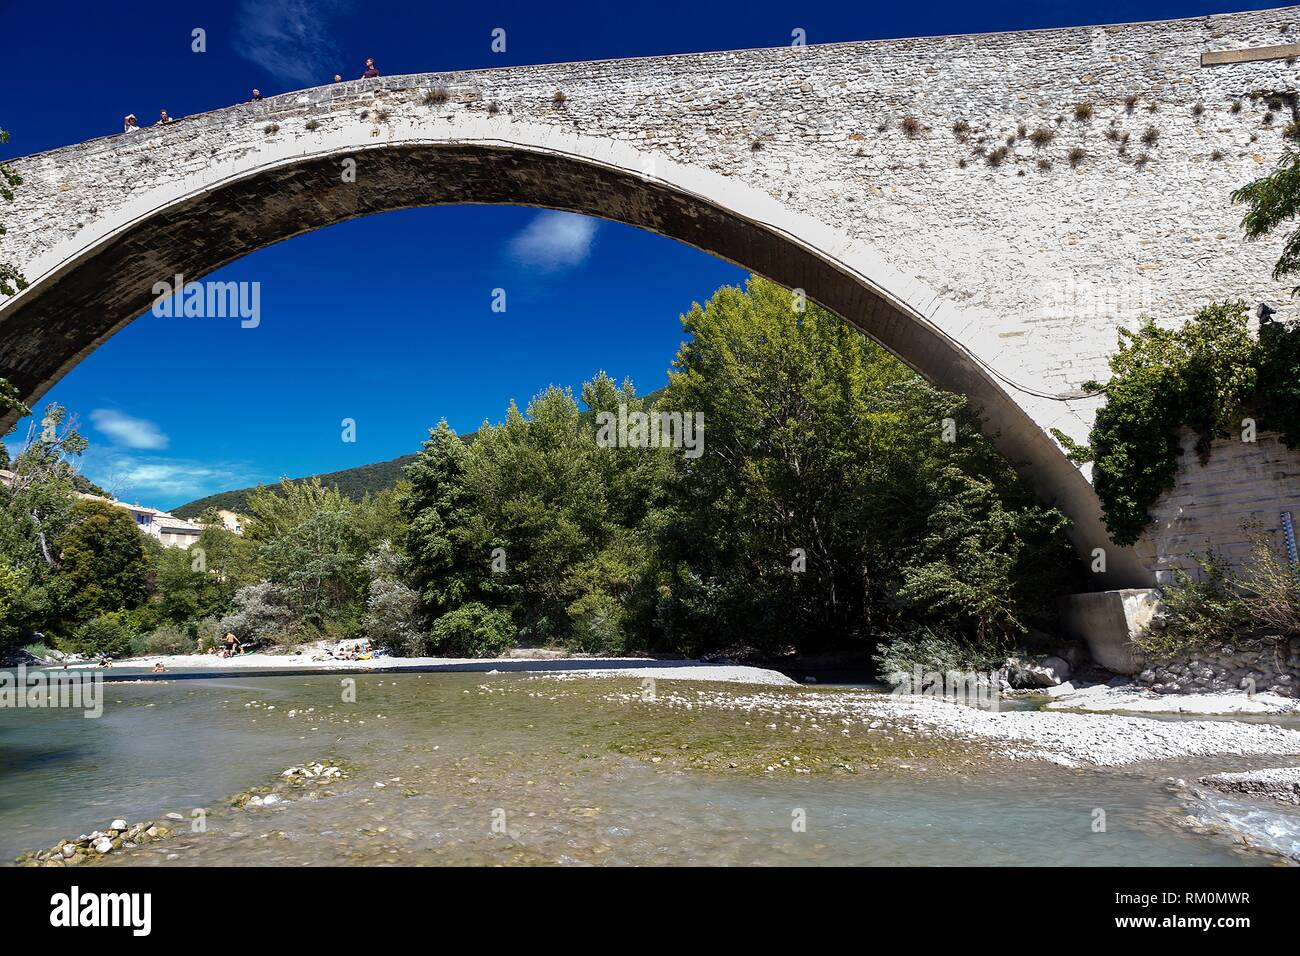 Nyon, Eygues river, France, Europe - Stock Image